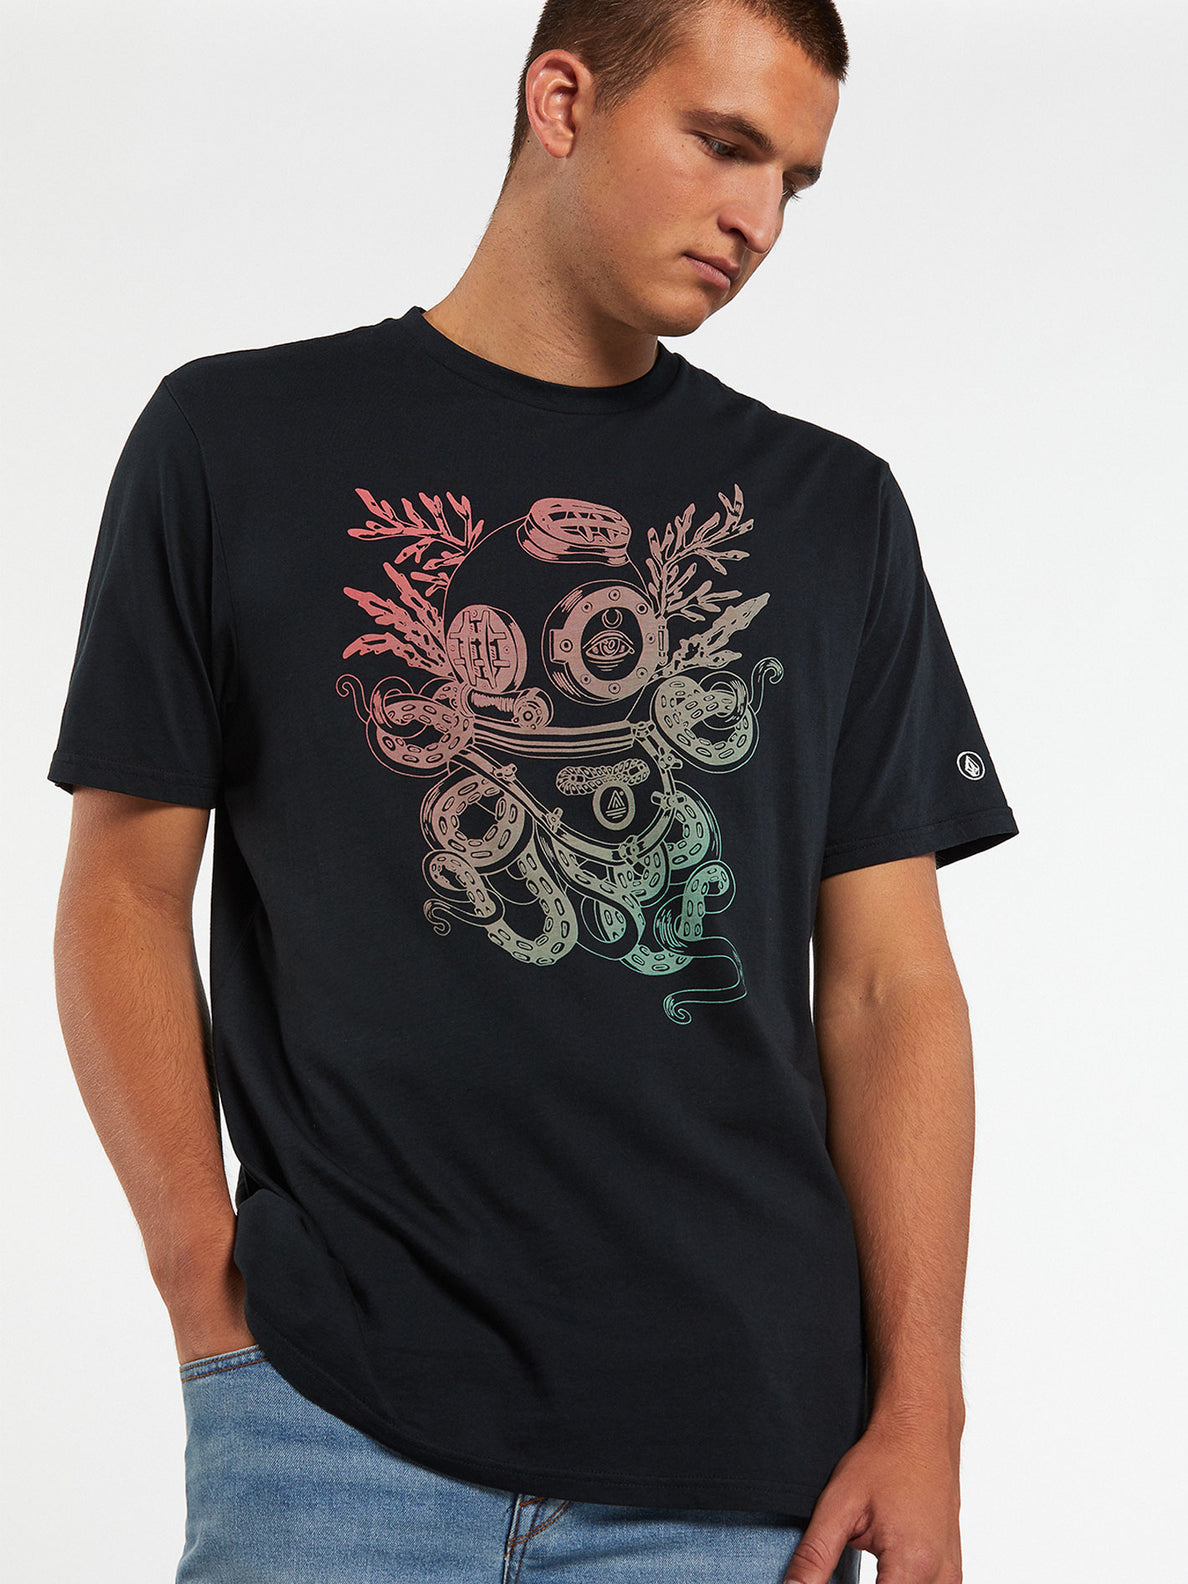 PangeaSeed Short Sleeve Tee - Black (A5032007_BLK) [2]